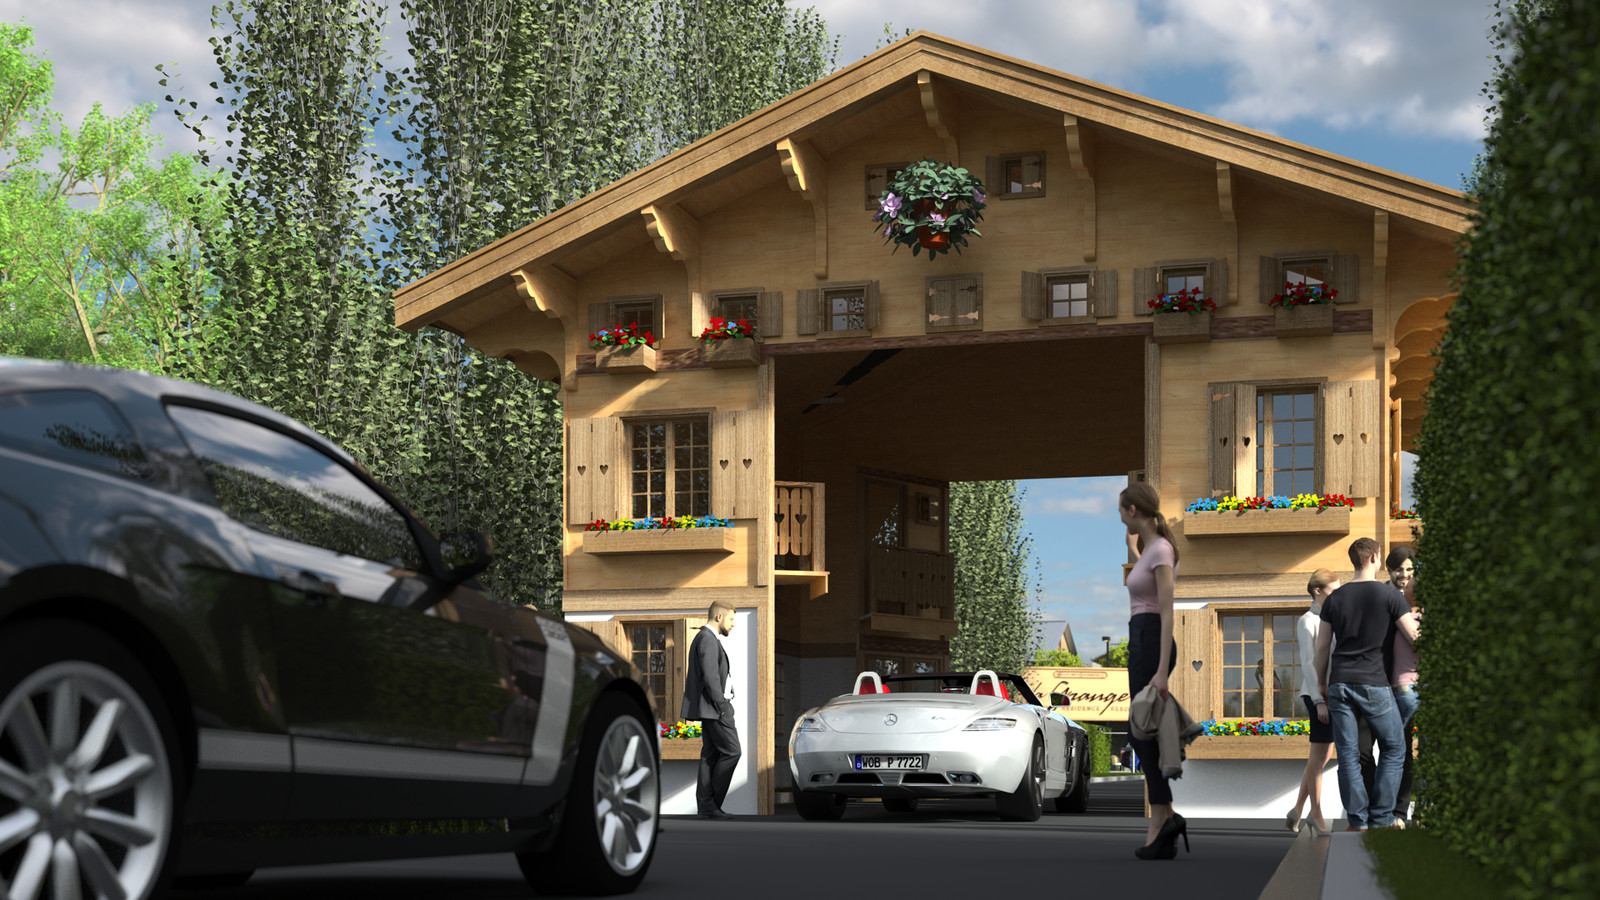 SketchUp 2018 + Thea Render  La Grange work-Scene 60 2pt Doors open Maxi sized Traditional Swiss Chalet Event Build  HDR by @HDRI-SKIES found here: http://hdri-skies.com/shop/hdri-sky-208/